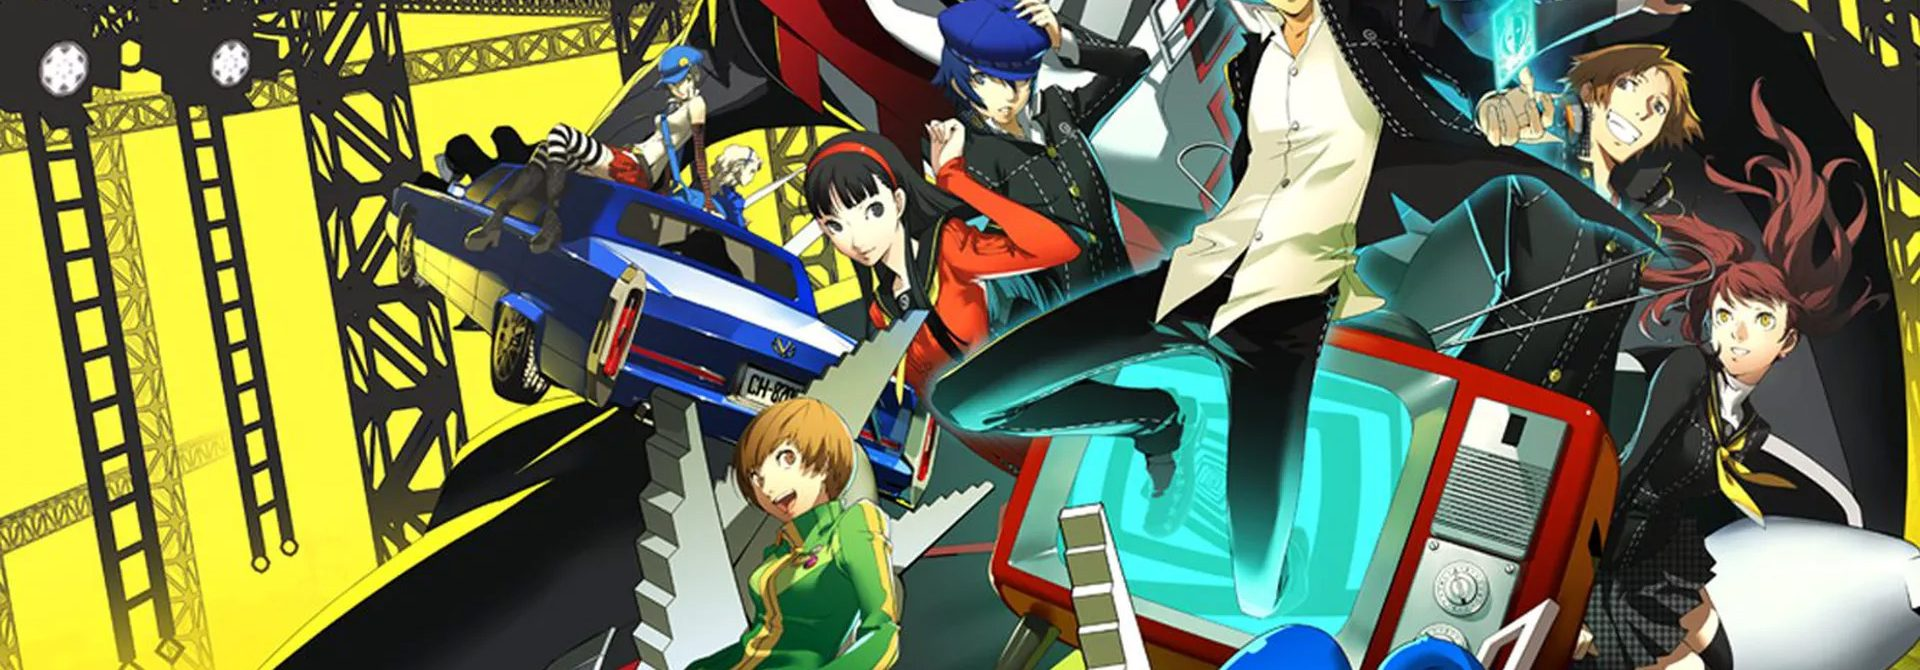 Surprise — Persona 4 Golden Is Now On PC